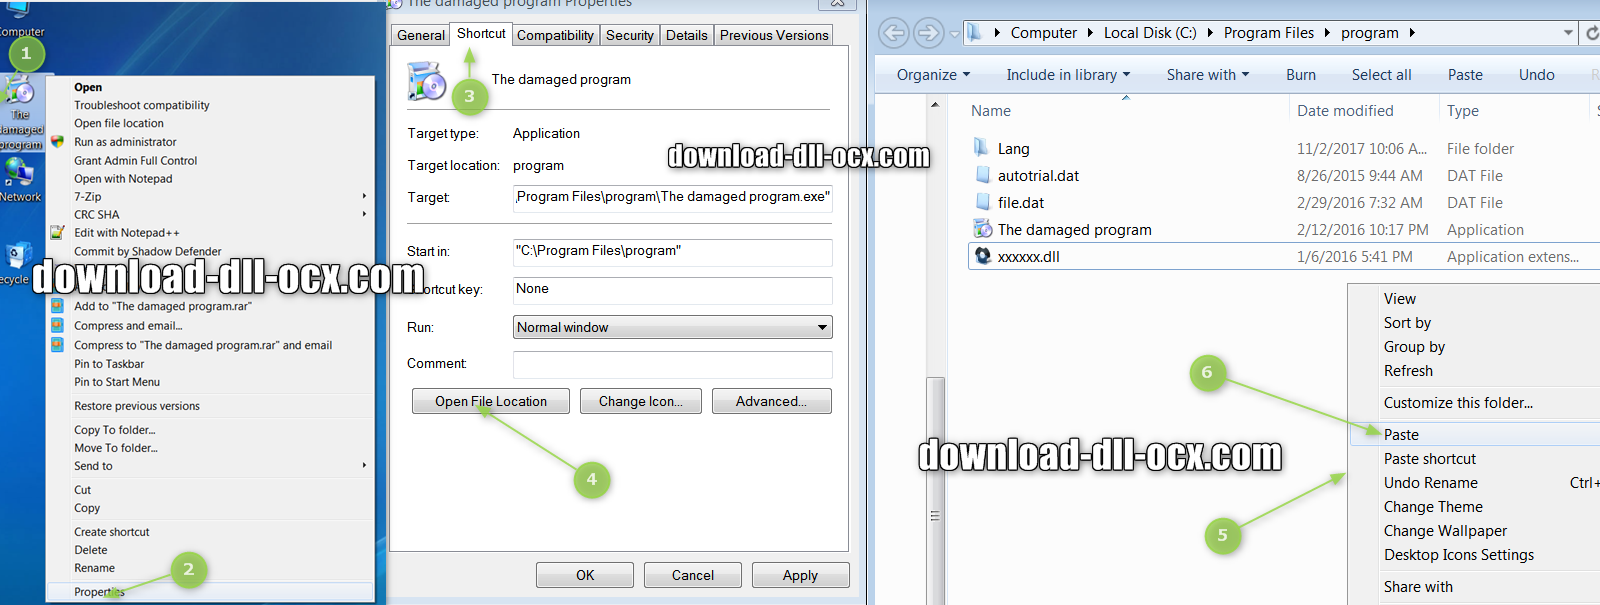 how to install raschap.dll file? for fix missing